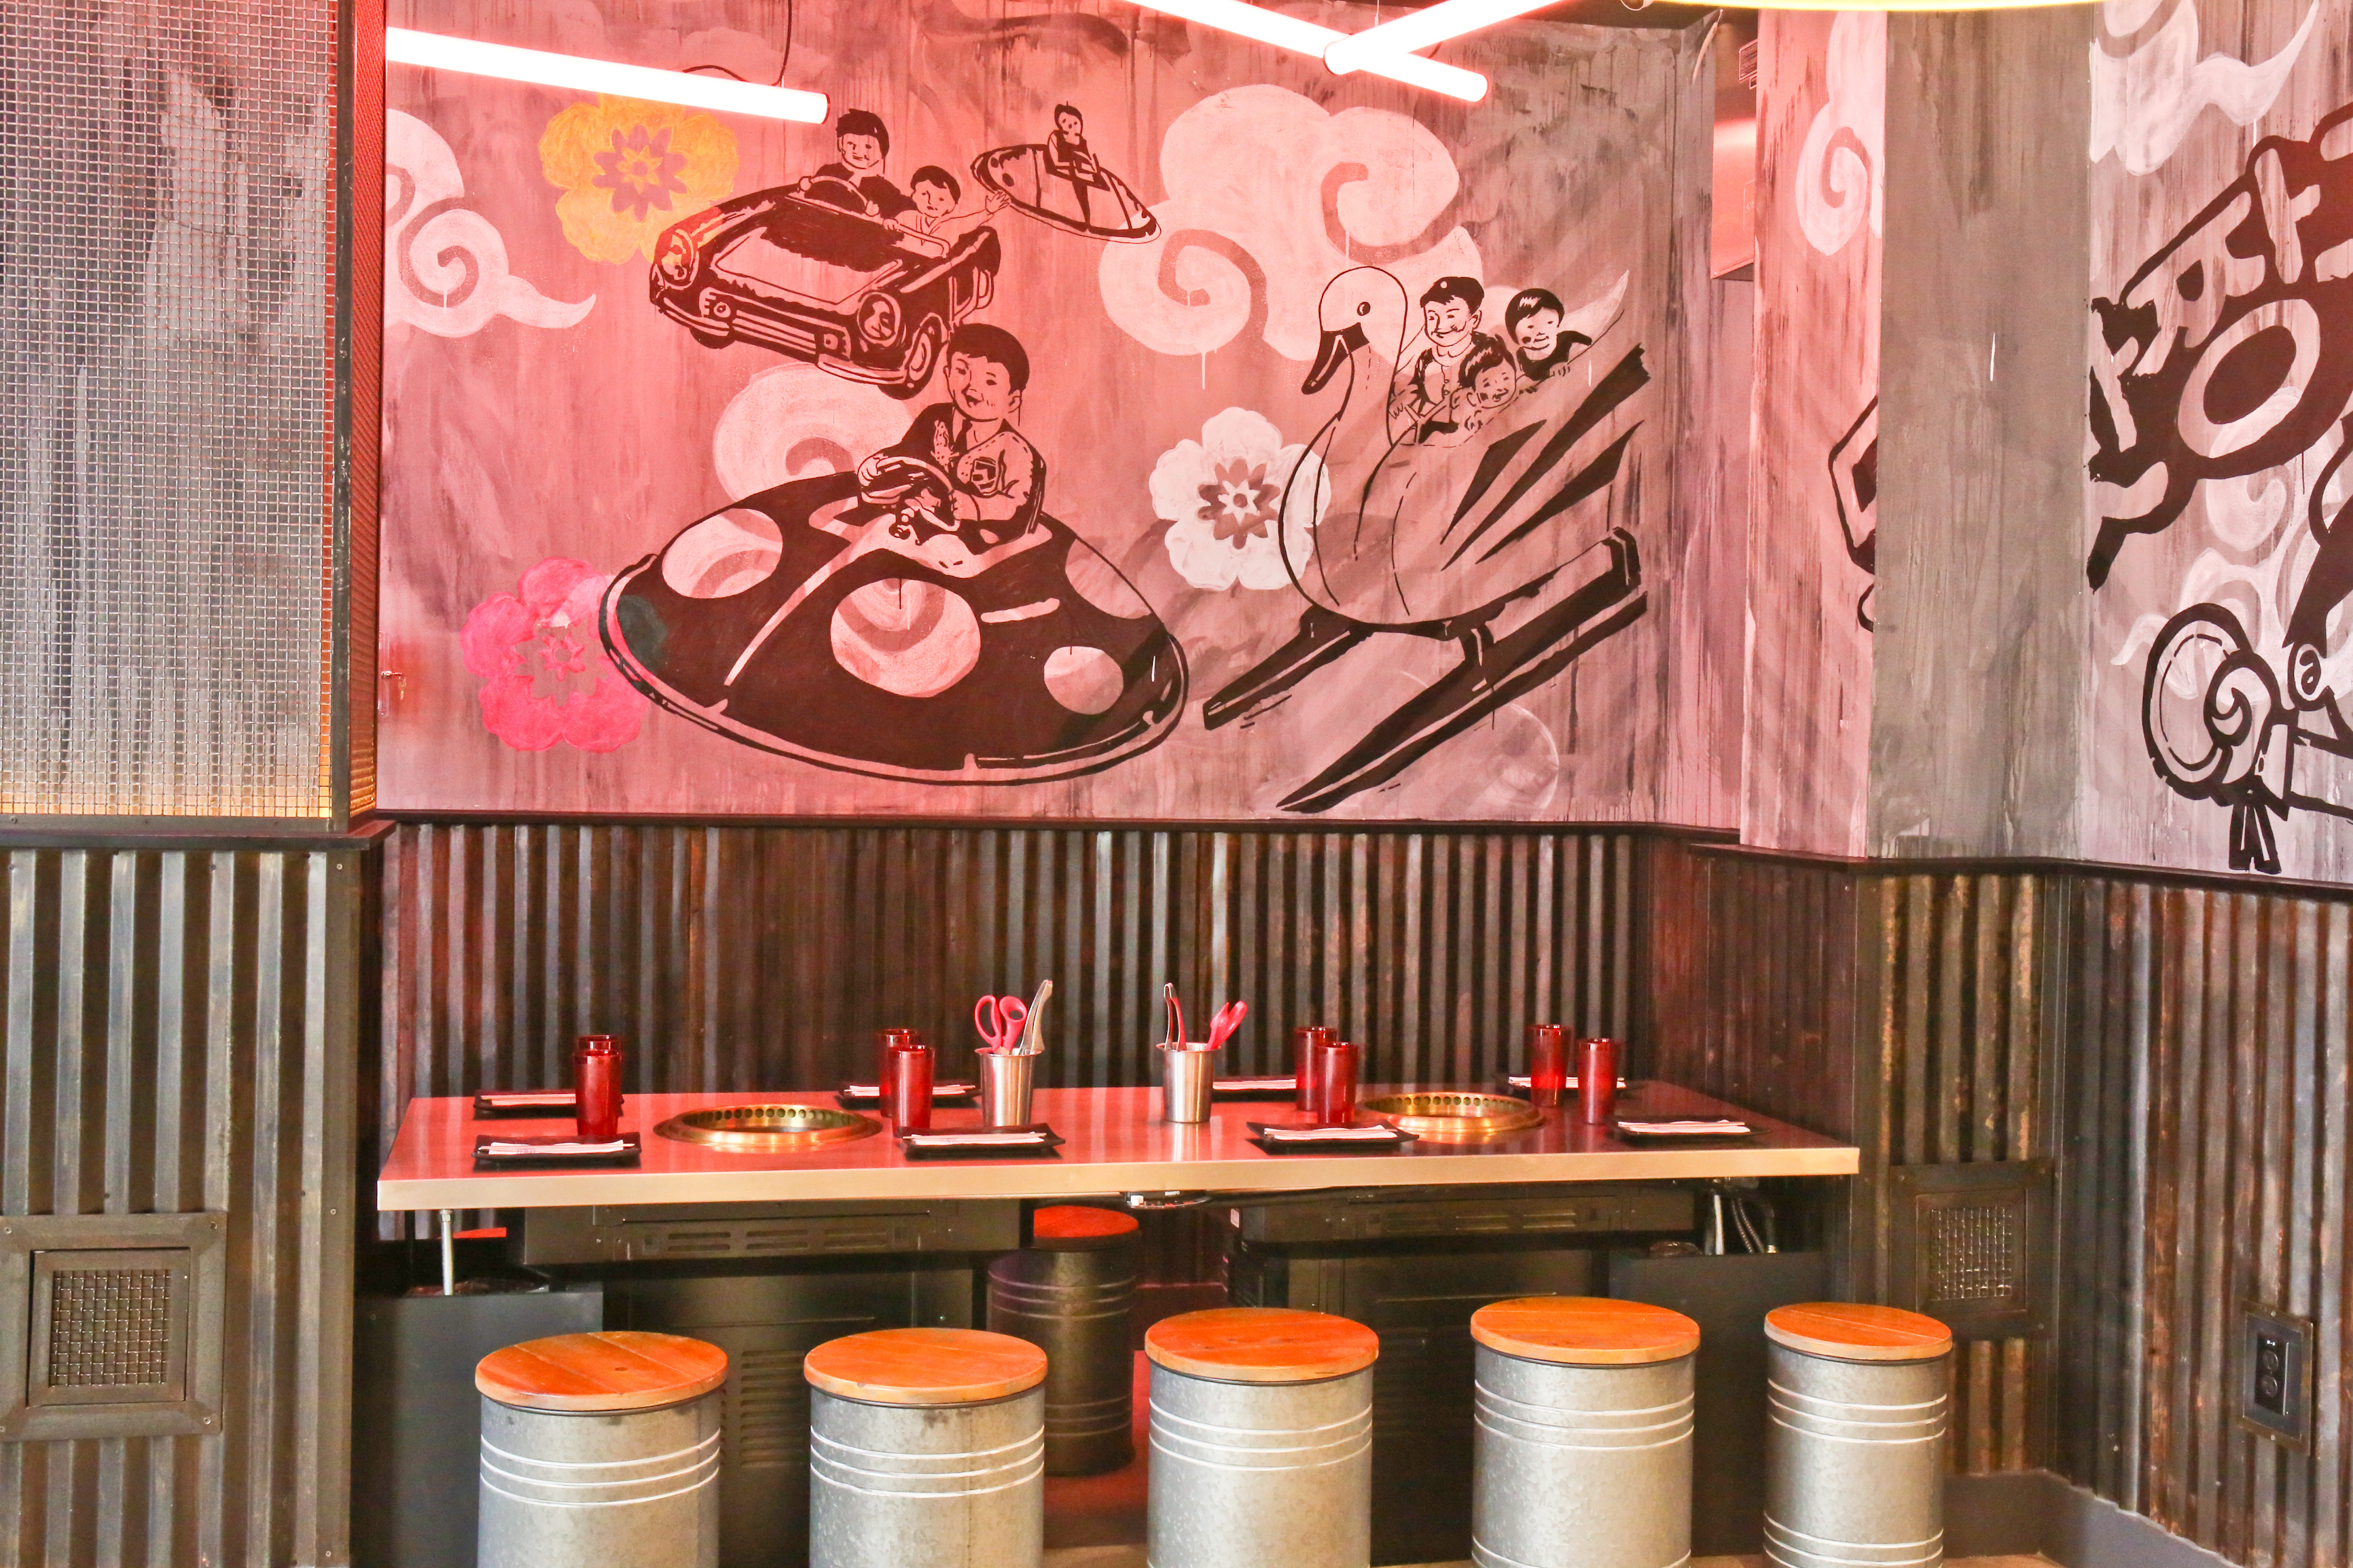 D.C.'s First Korean Barbecue Joint Outfitted With Tabletop Grills Opens in Shaw